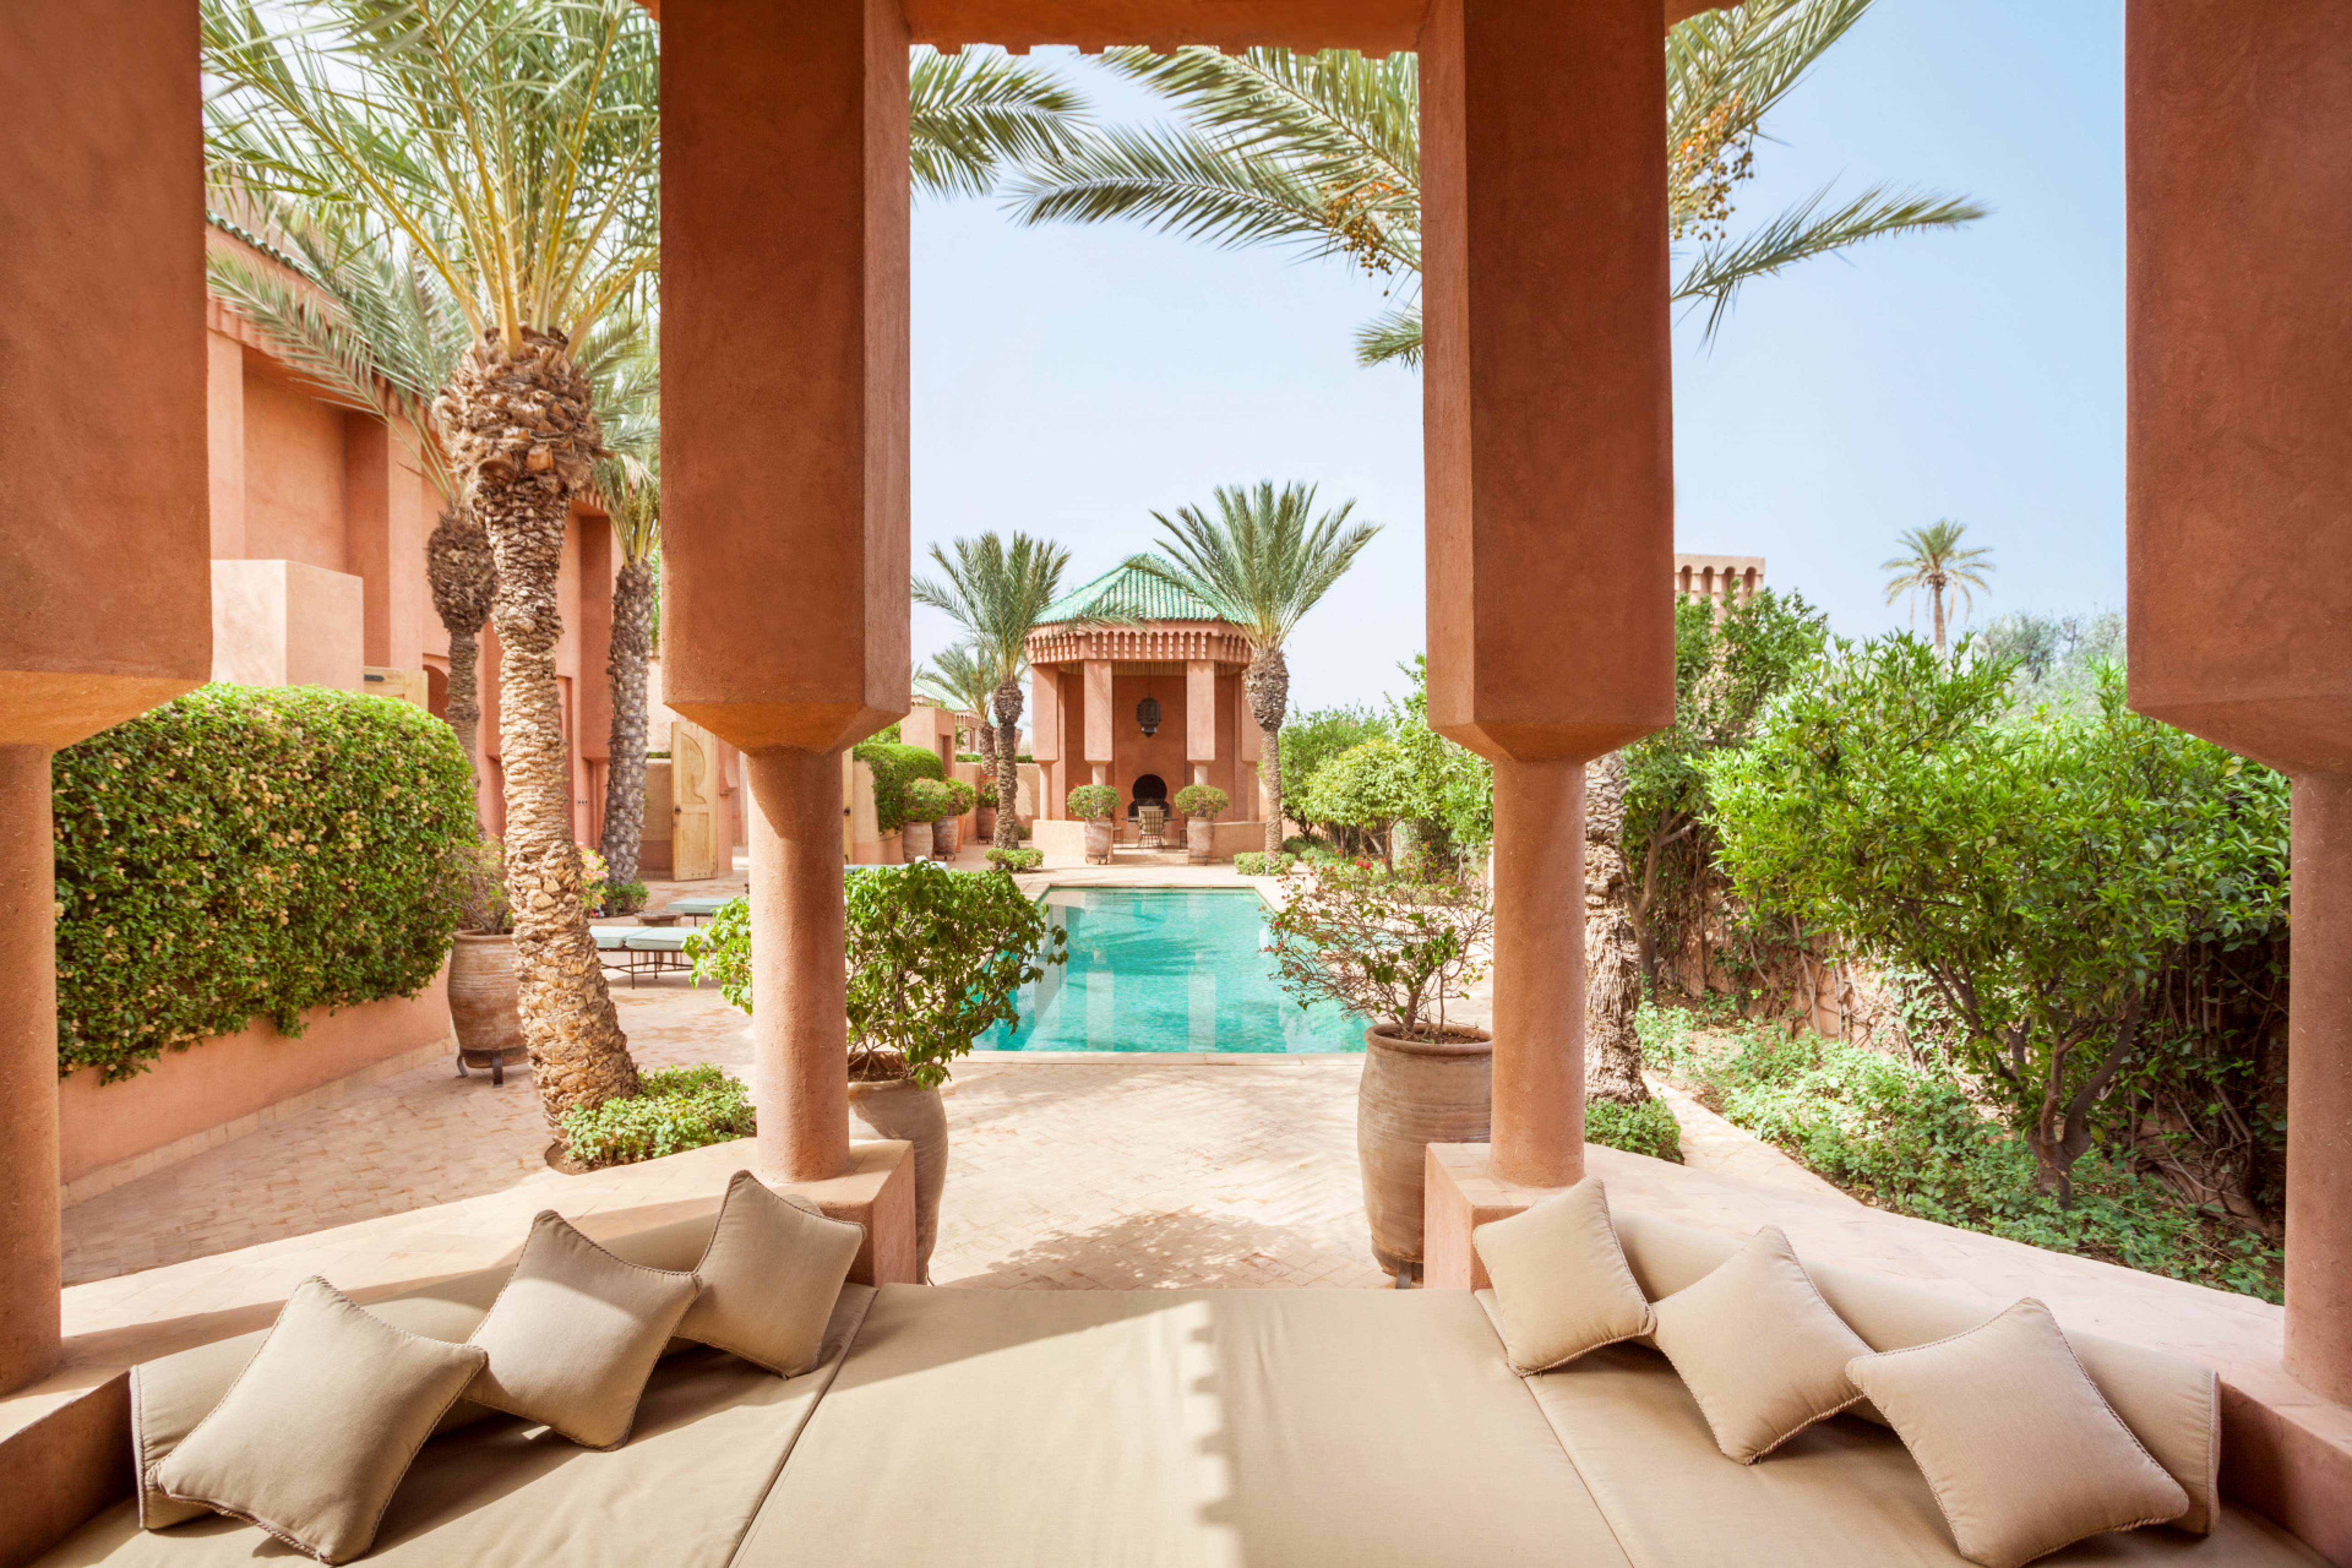 amanjena - marrakesch - emporium travel - luxushotels & luxusreisen